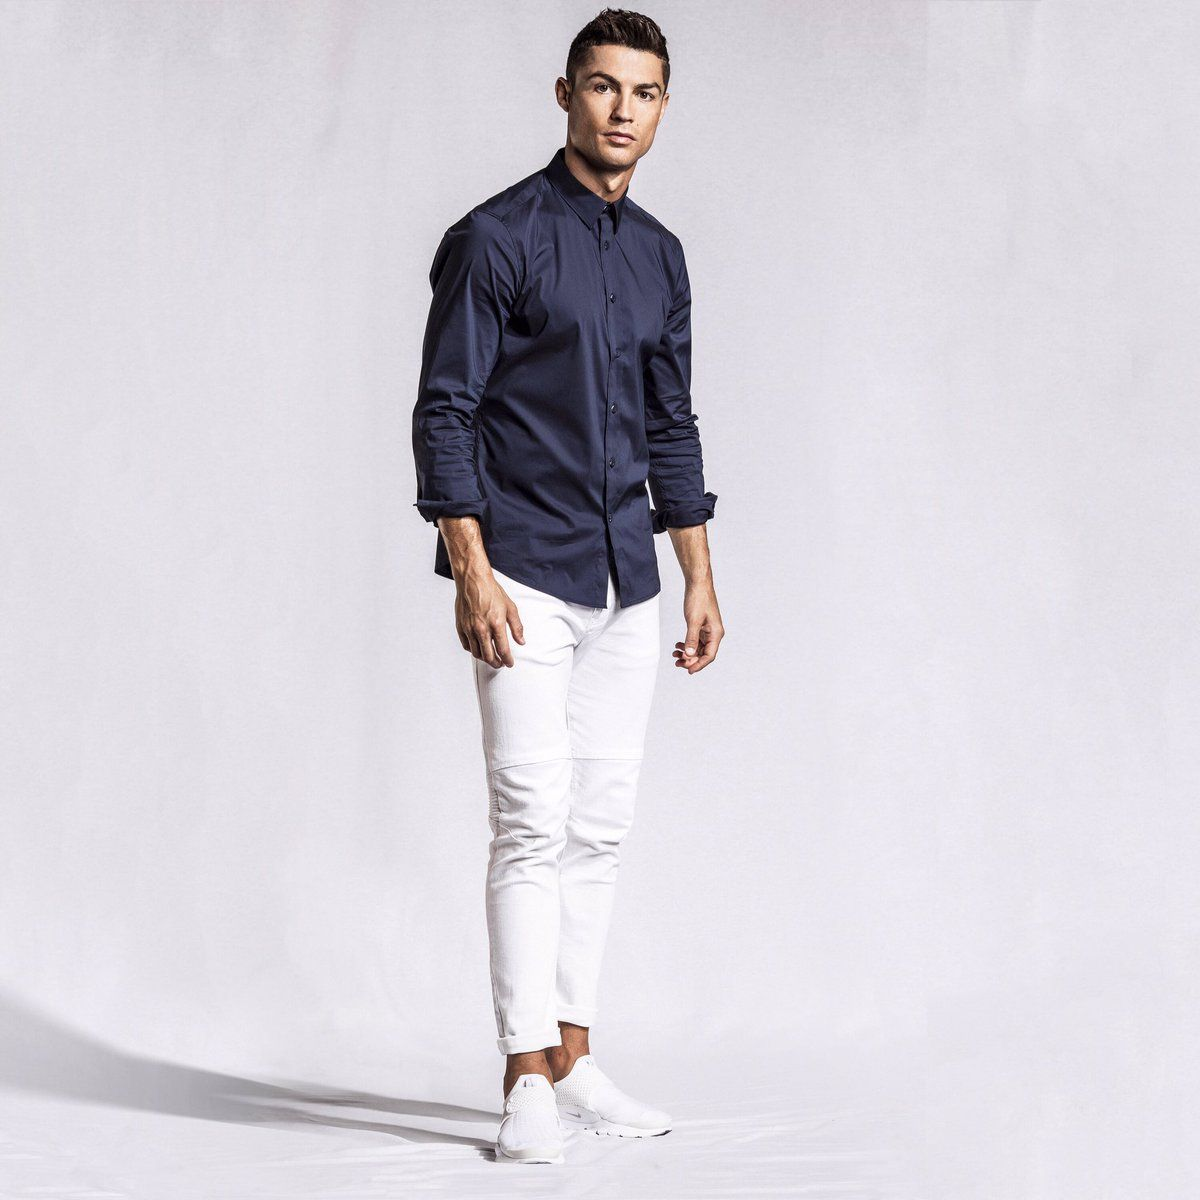 99ad7e628d05 Cristiano Ronaldo - CR7 Denim Jeans and Signature Clothing Collection